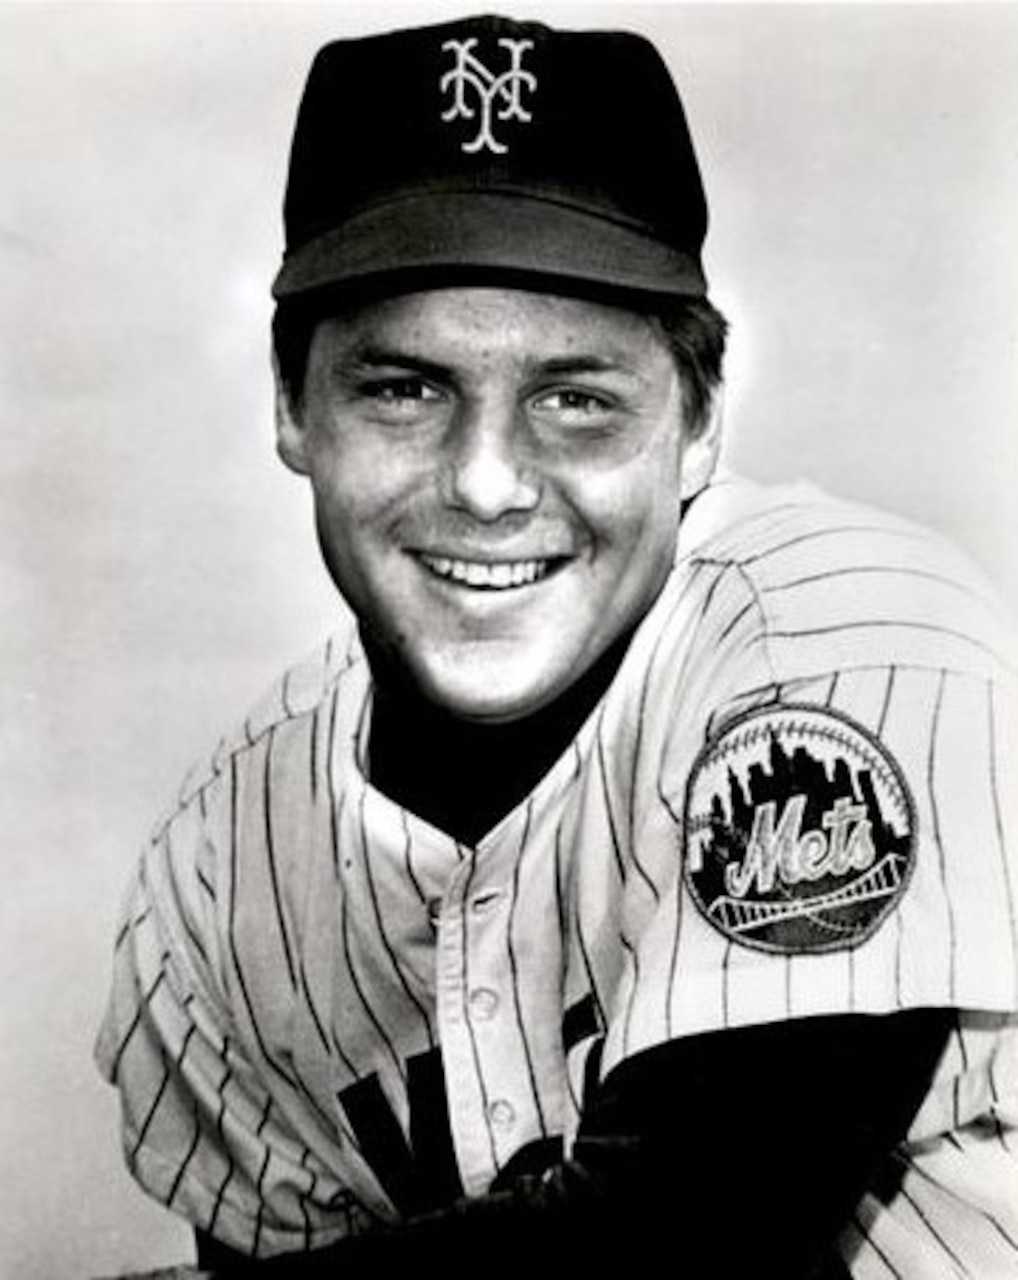 A baseball player smiles for the camera.